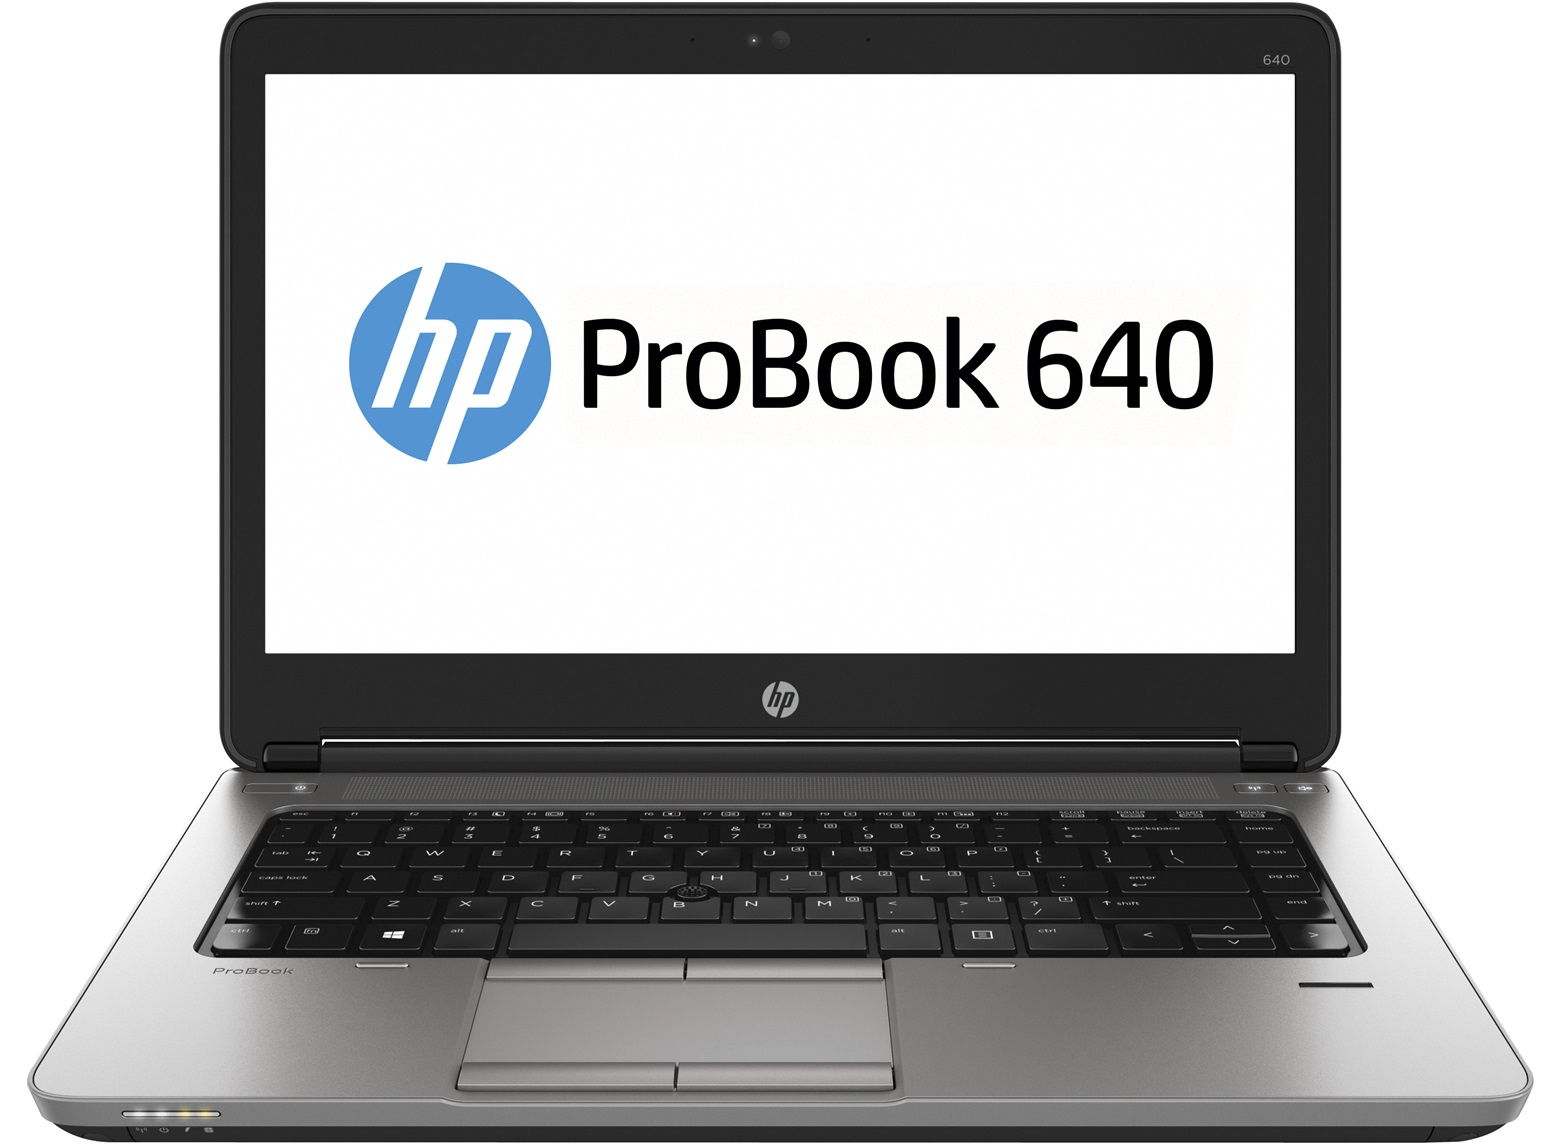 HP ProBook 640 G1 i5-4210M 14 HD+ AG 4GB 500(7.2) DVD FPR backlit W7P+W10P